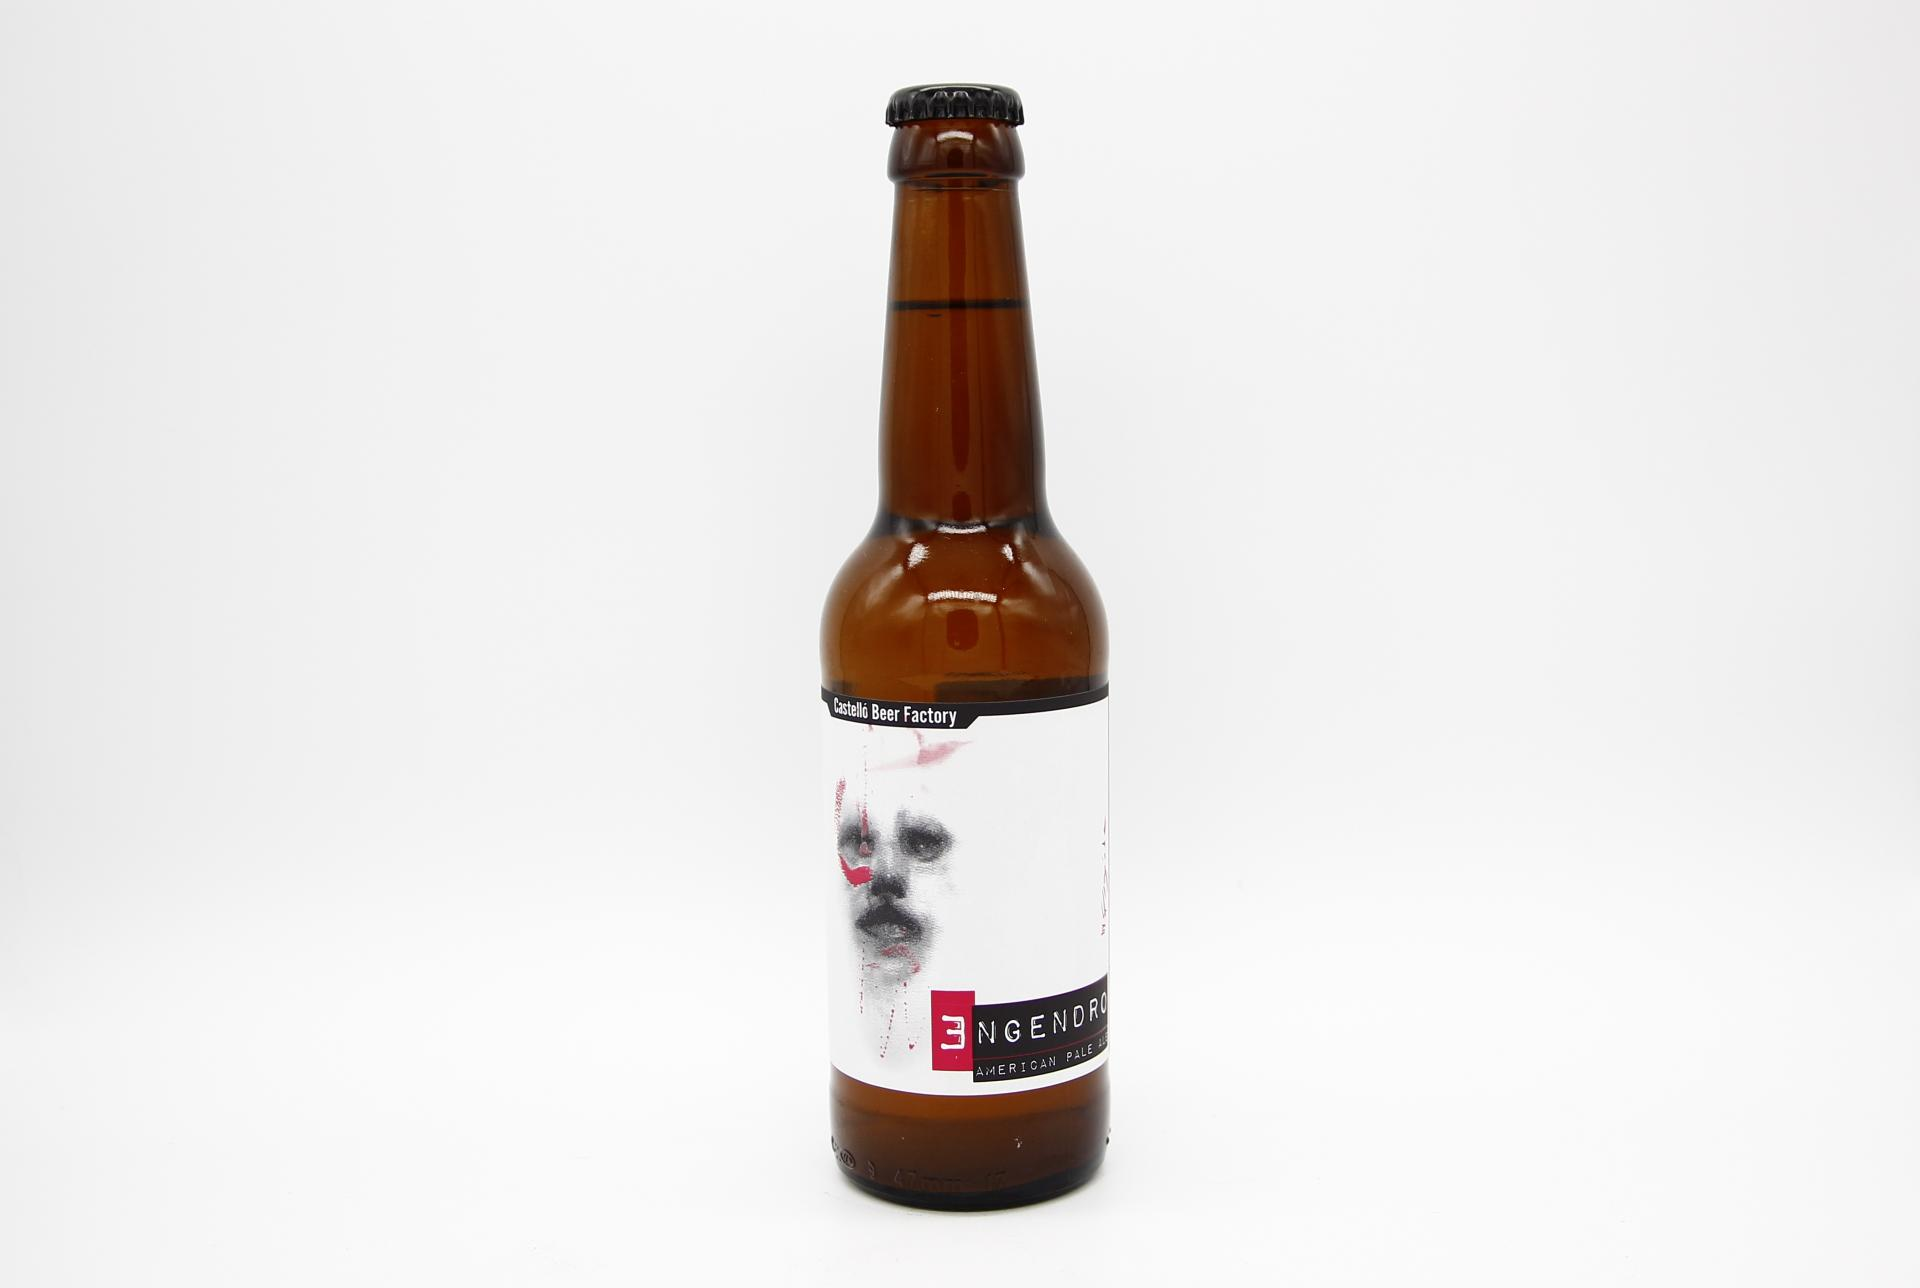 CASTELLÓ BEER FACTORY - ENGENDRO 33cl